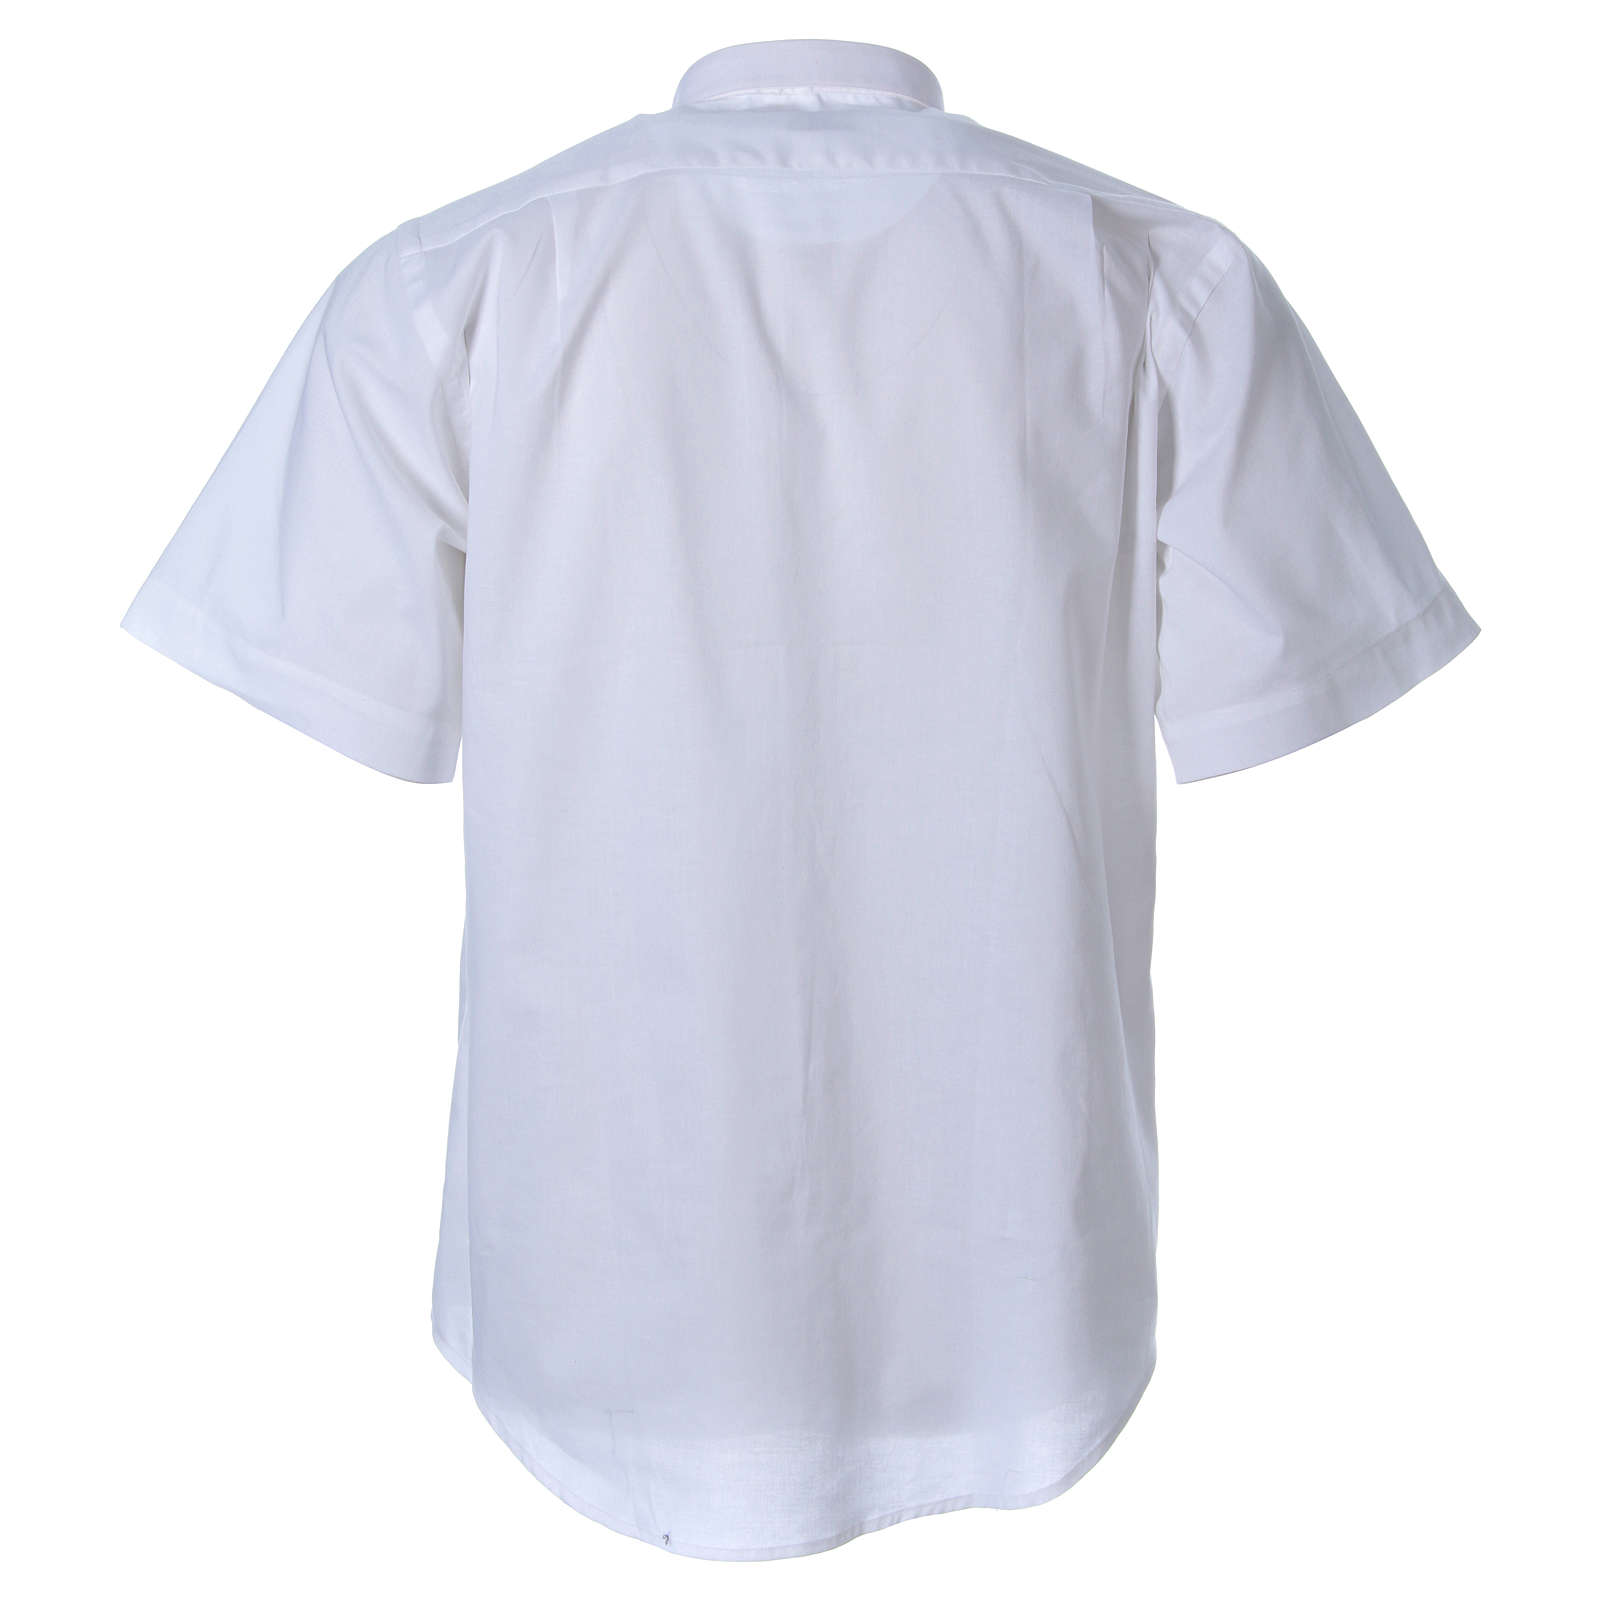 STOCK clergyman shirt with short sleeves in mixed material white 4